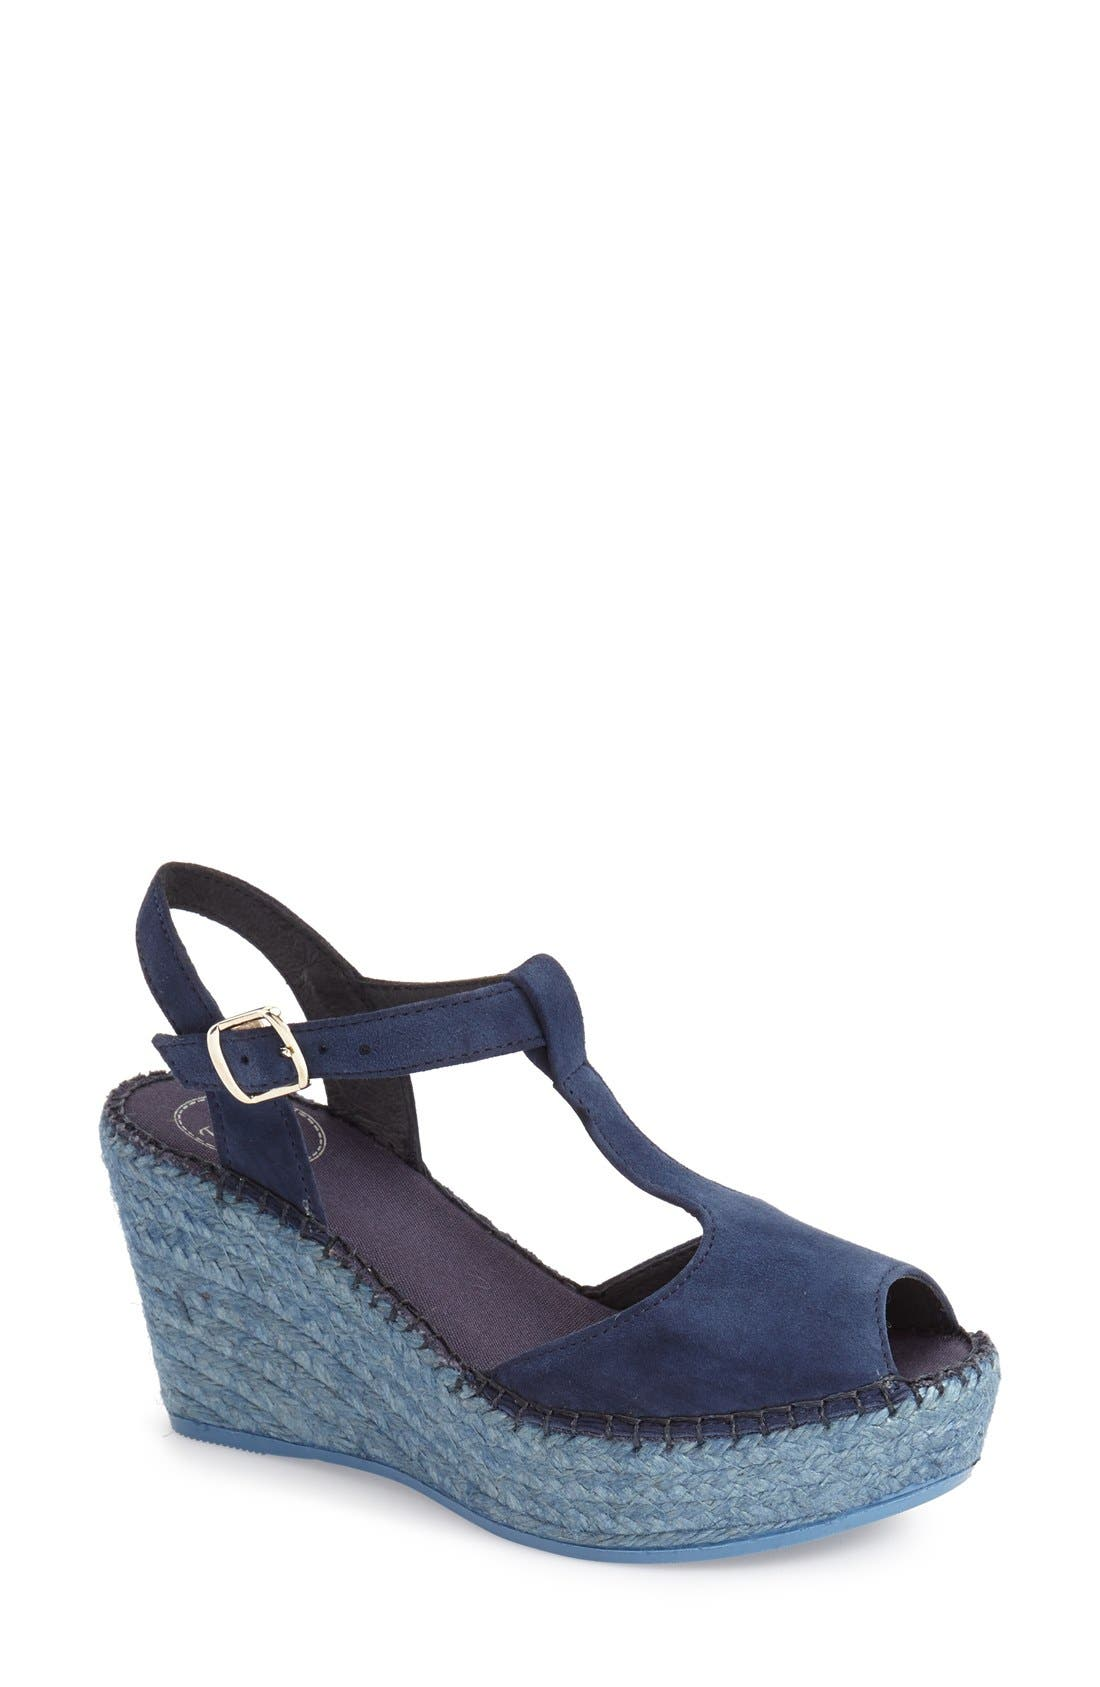 Lidia T-Strap Espadrille Wedge,                             Main thumbnail 1, color,                             NAVY SUEDE